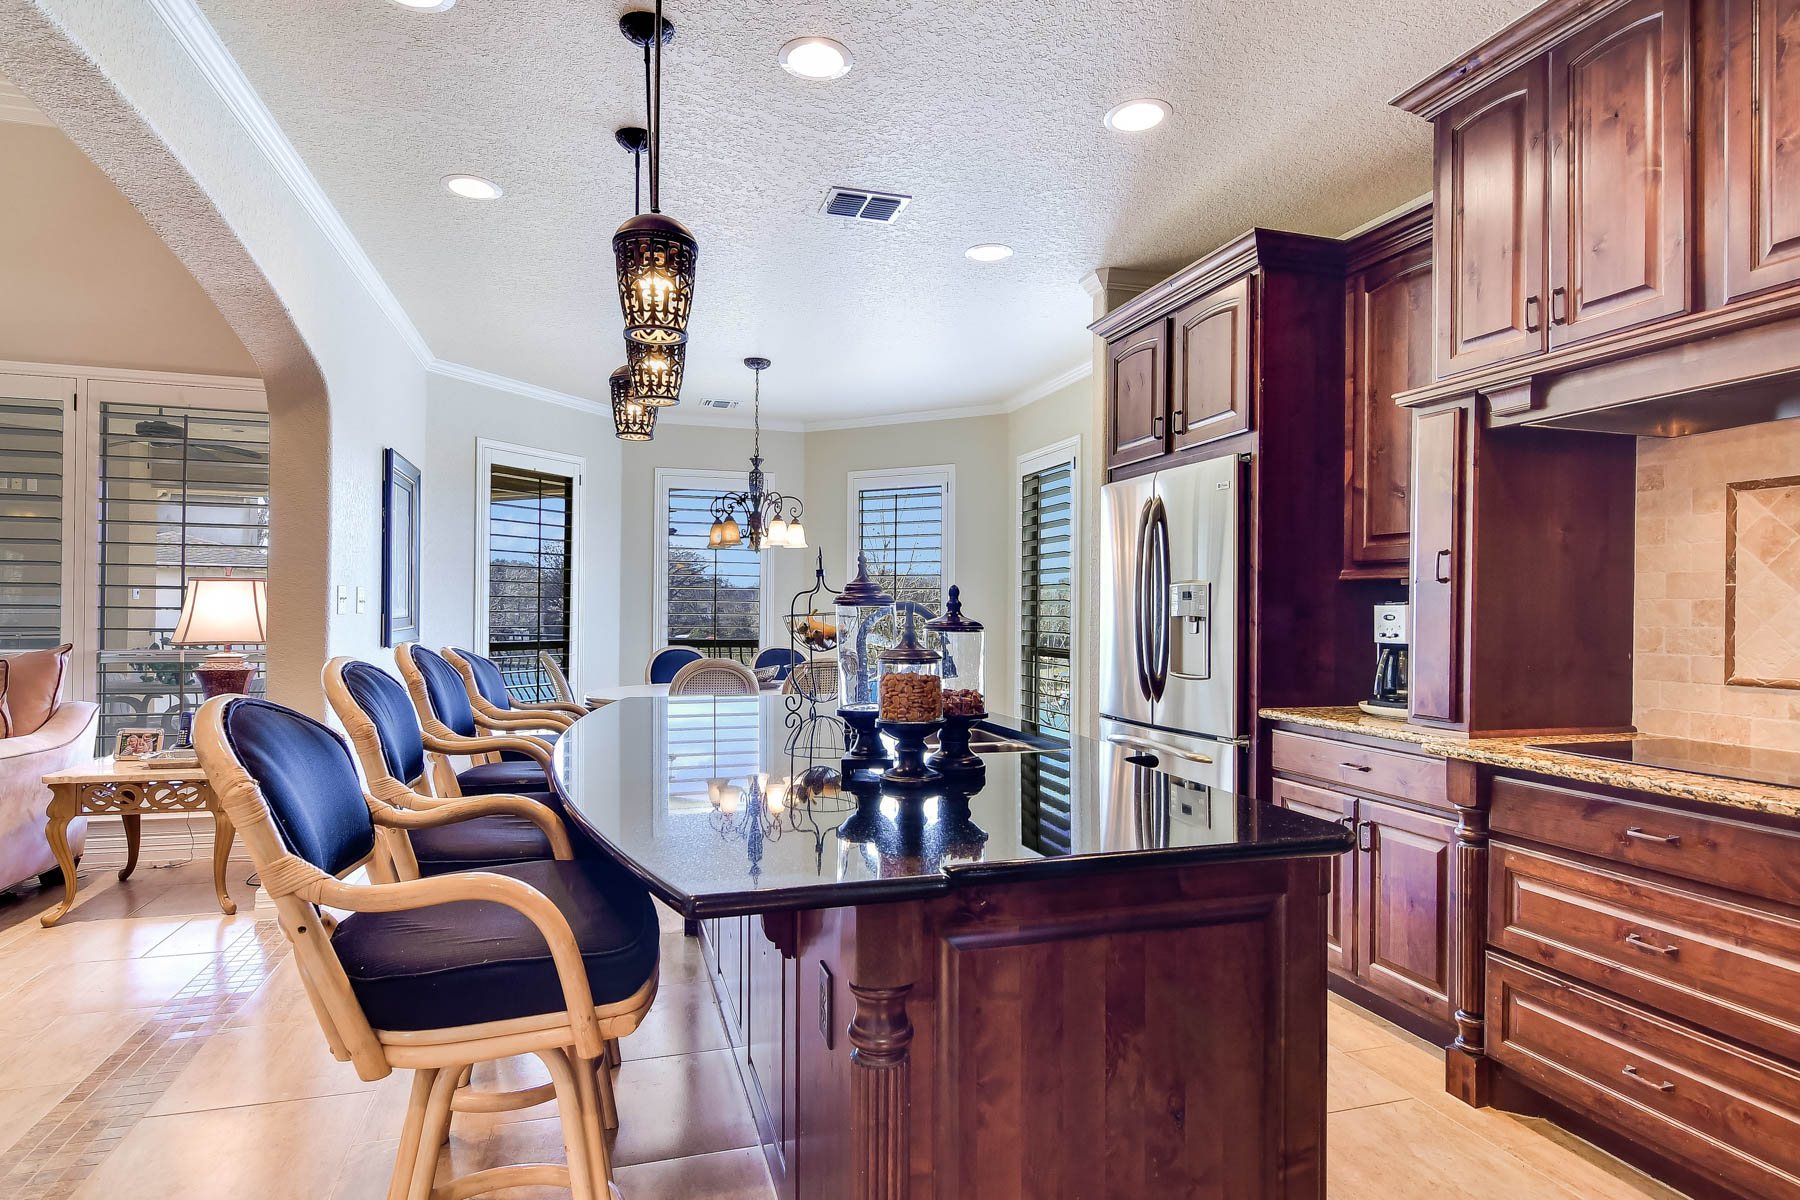 Additional photo for property listing at Breathtaking Waterfront Home on Lake McQueeney 326 Las Hadas Seguin, Texas 78155 United States